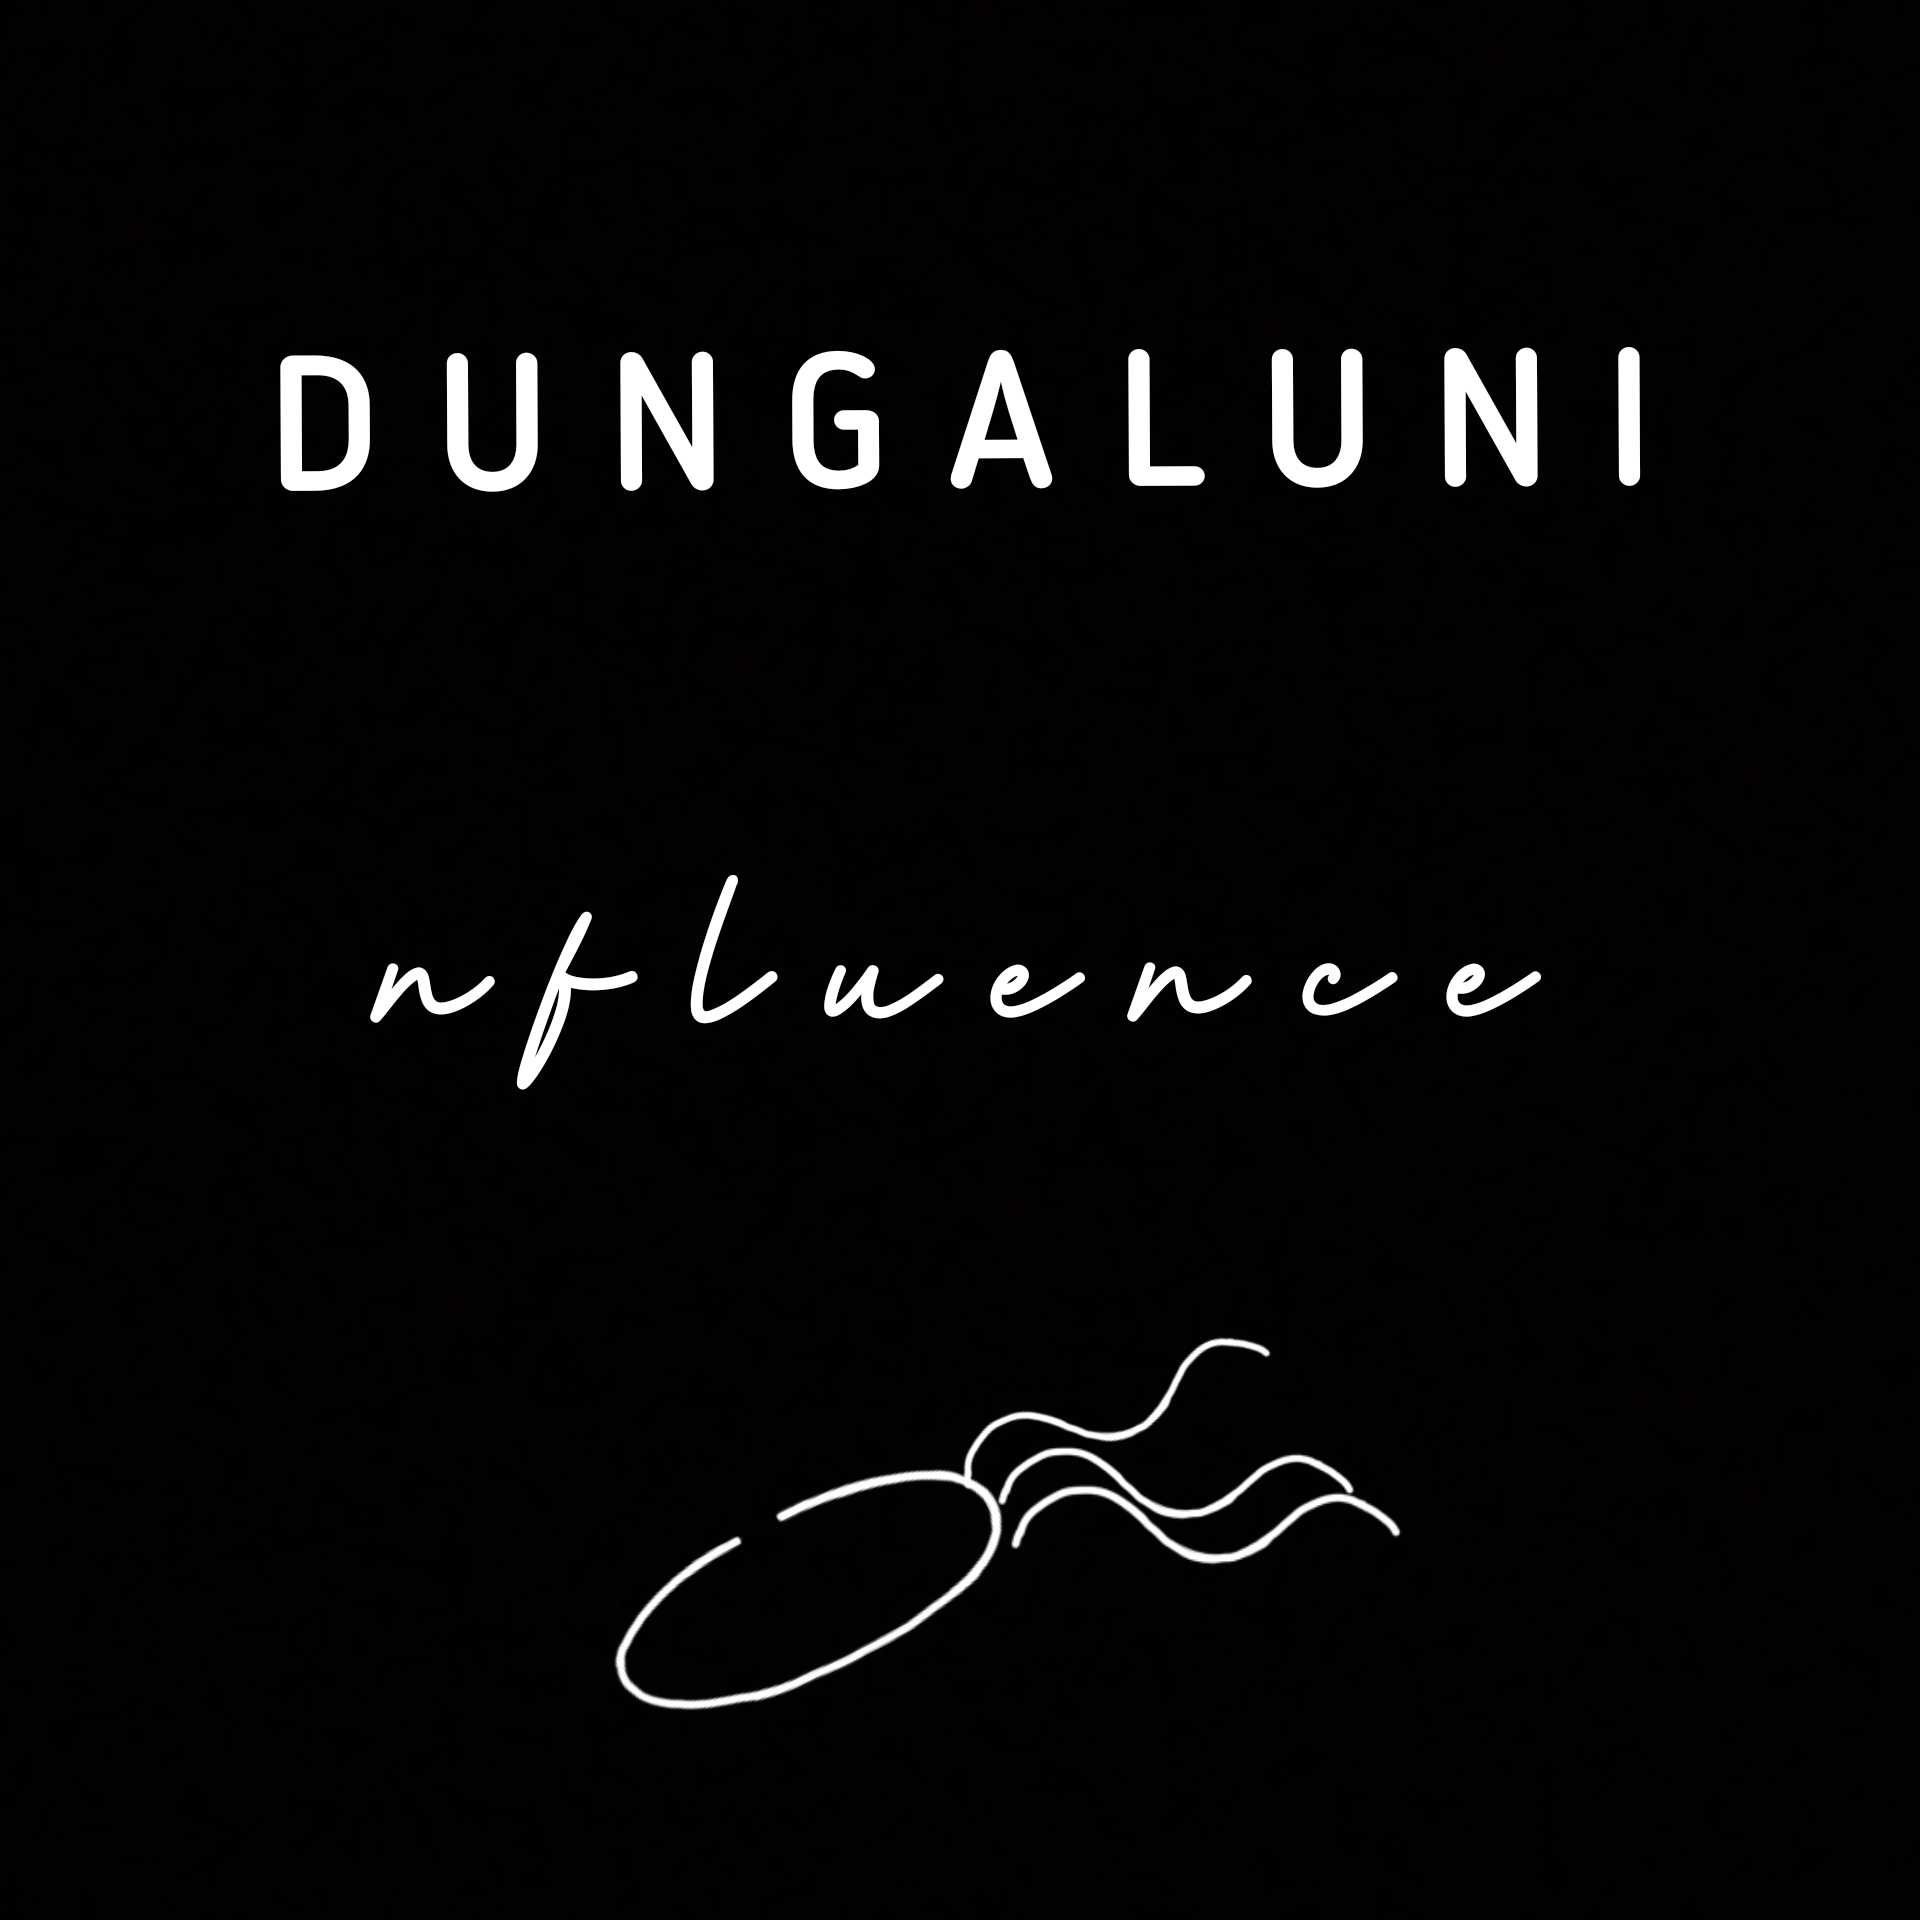 work, hereby publish it under the following license: English Dungaluni Influence off the Black and White album author name string: Dungaluni Wikimedia